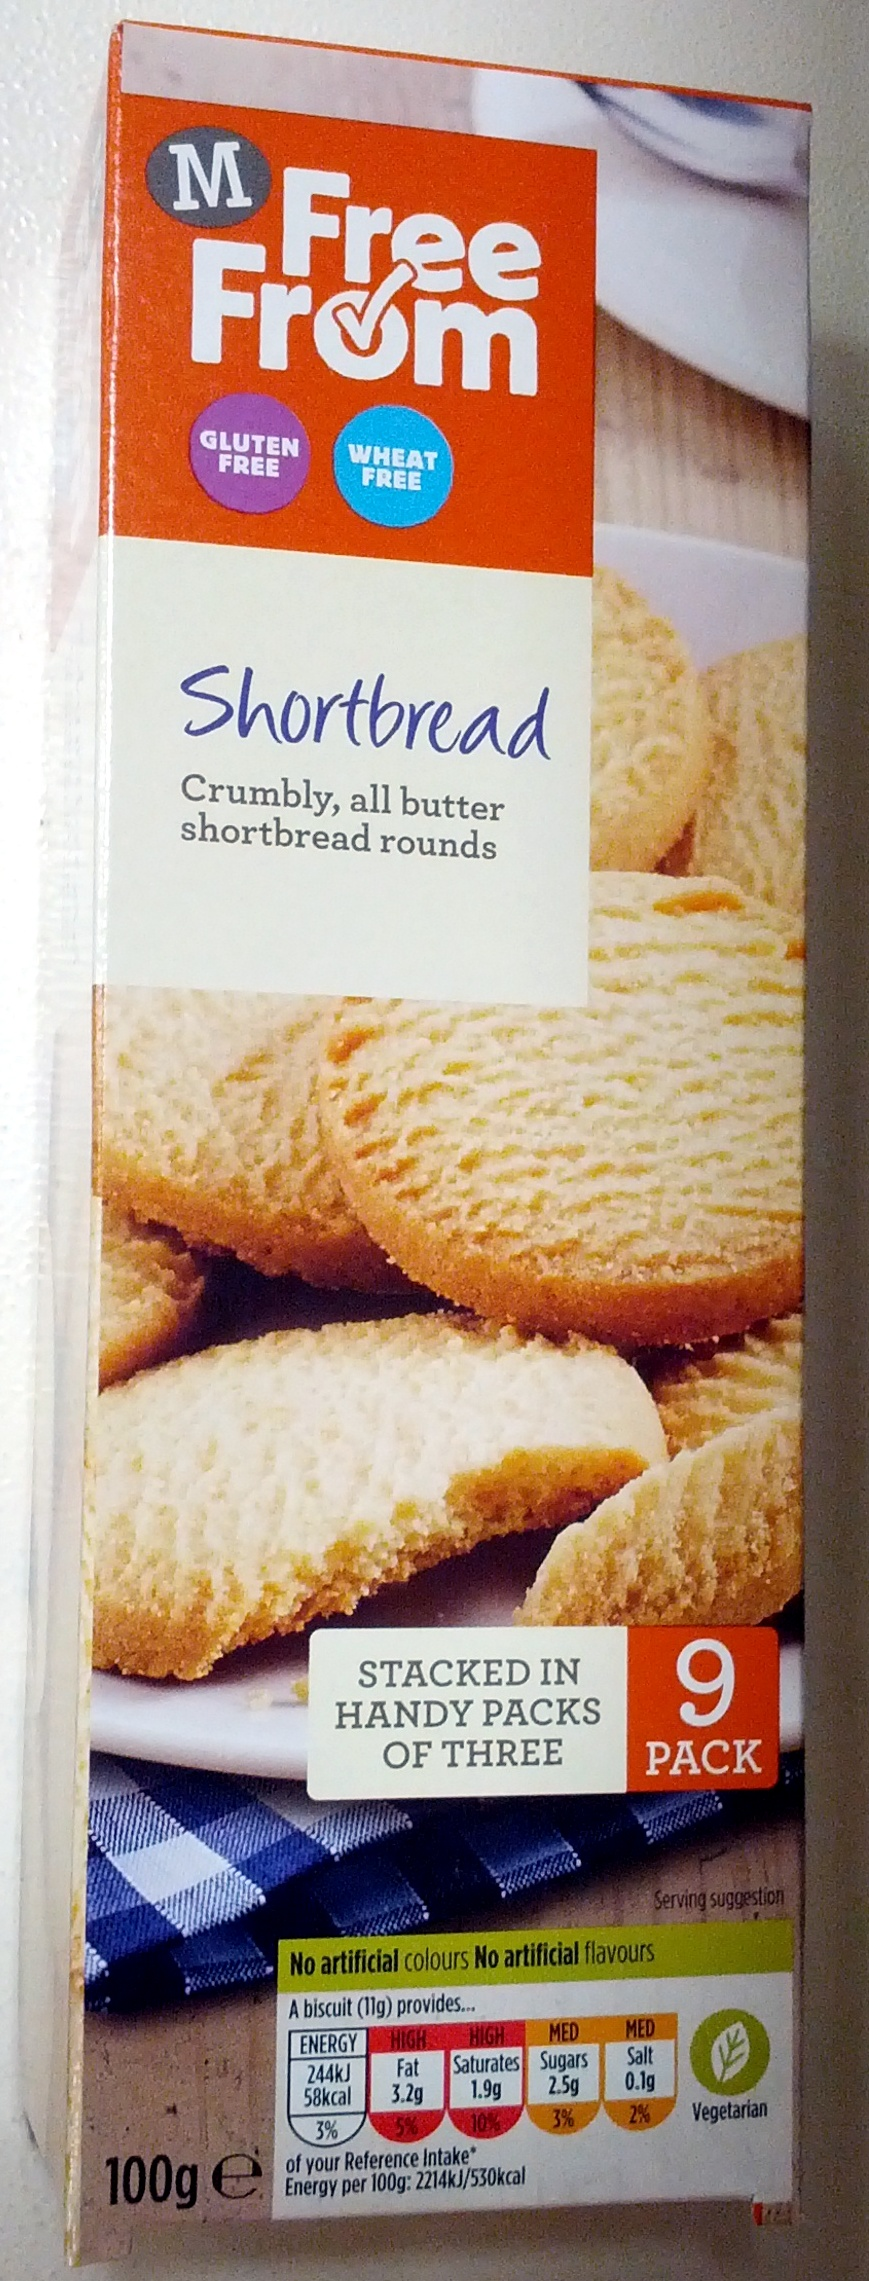 Shortbread - Product - en